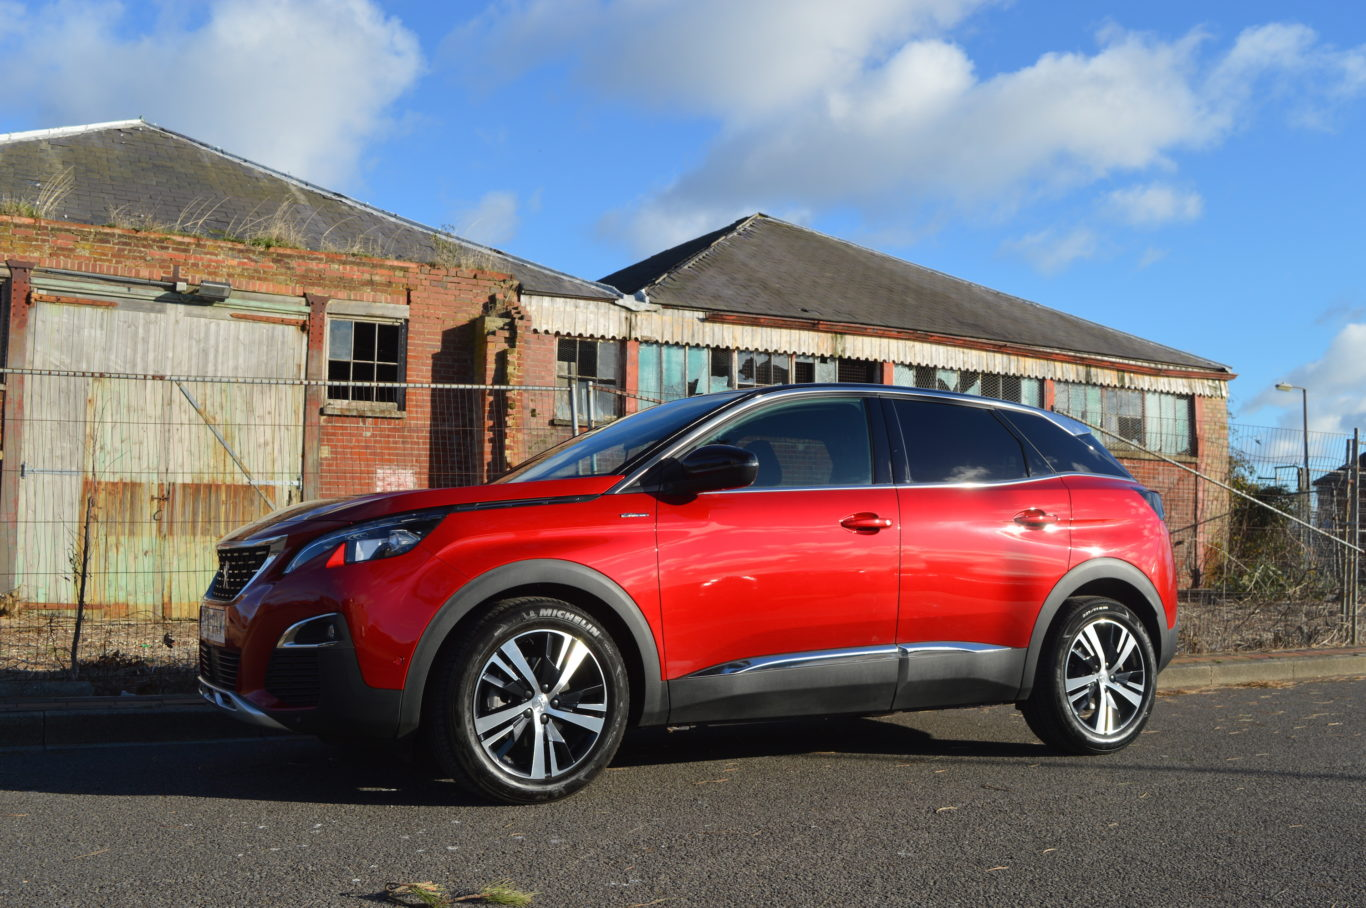 The Peugeot benefits from large diamond-cut alloy wheels